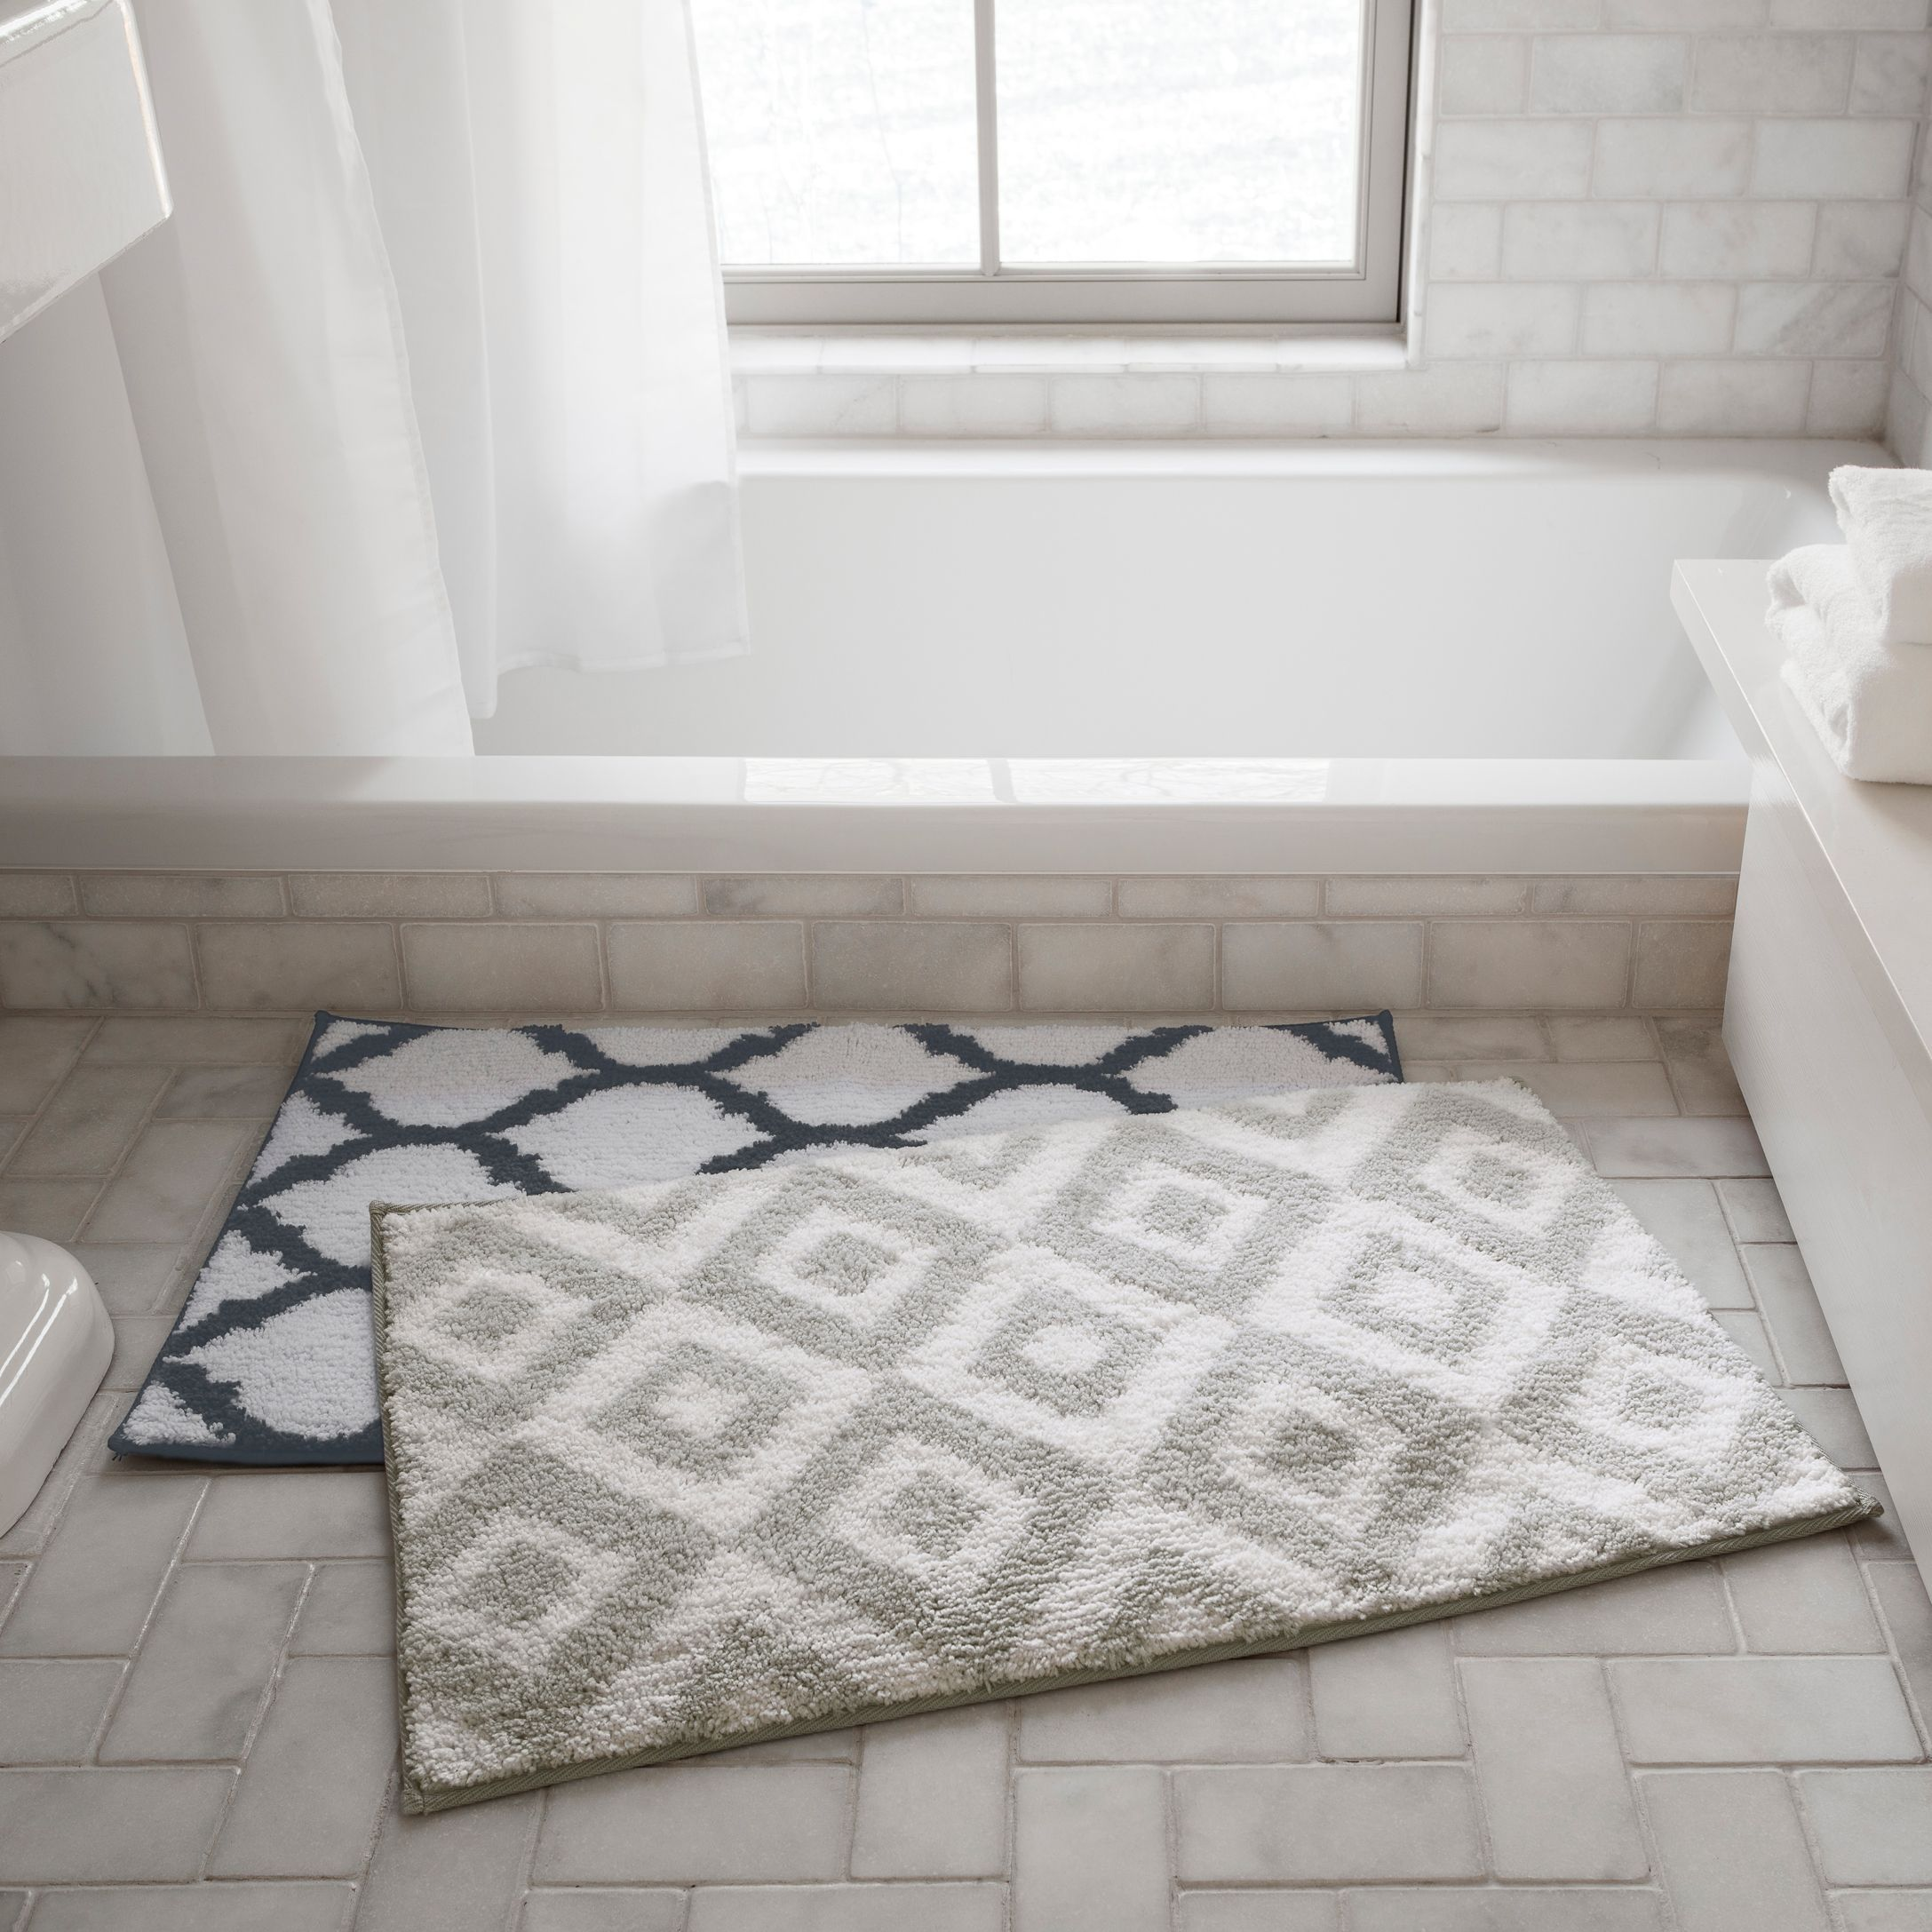 GEO PATTERN BATH MAT Simons Maisonsimons Decor Bathroom - Beige bath mat for bathroom decorating ideas